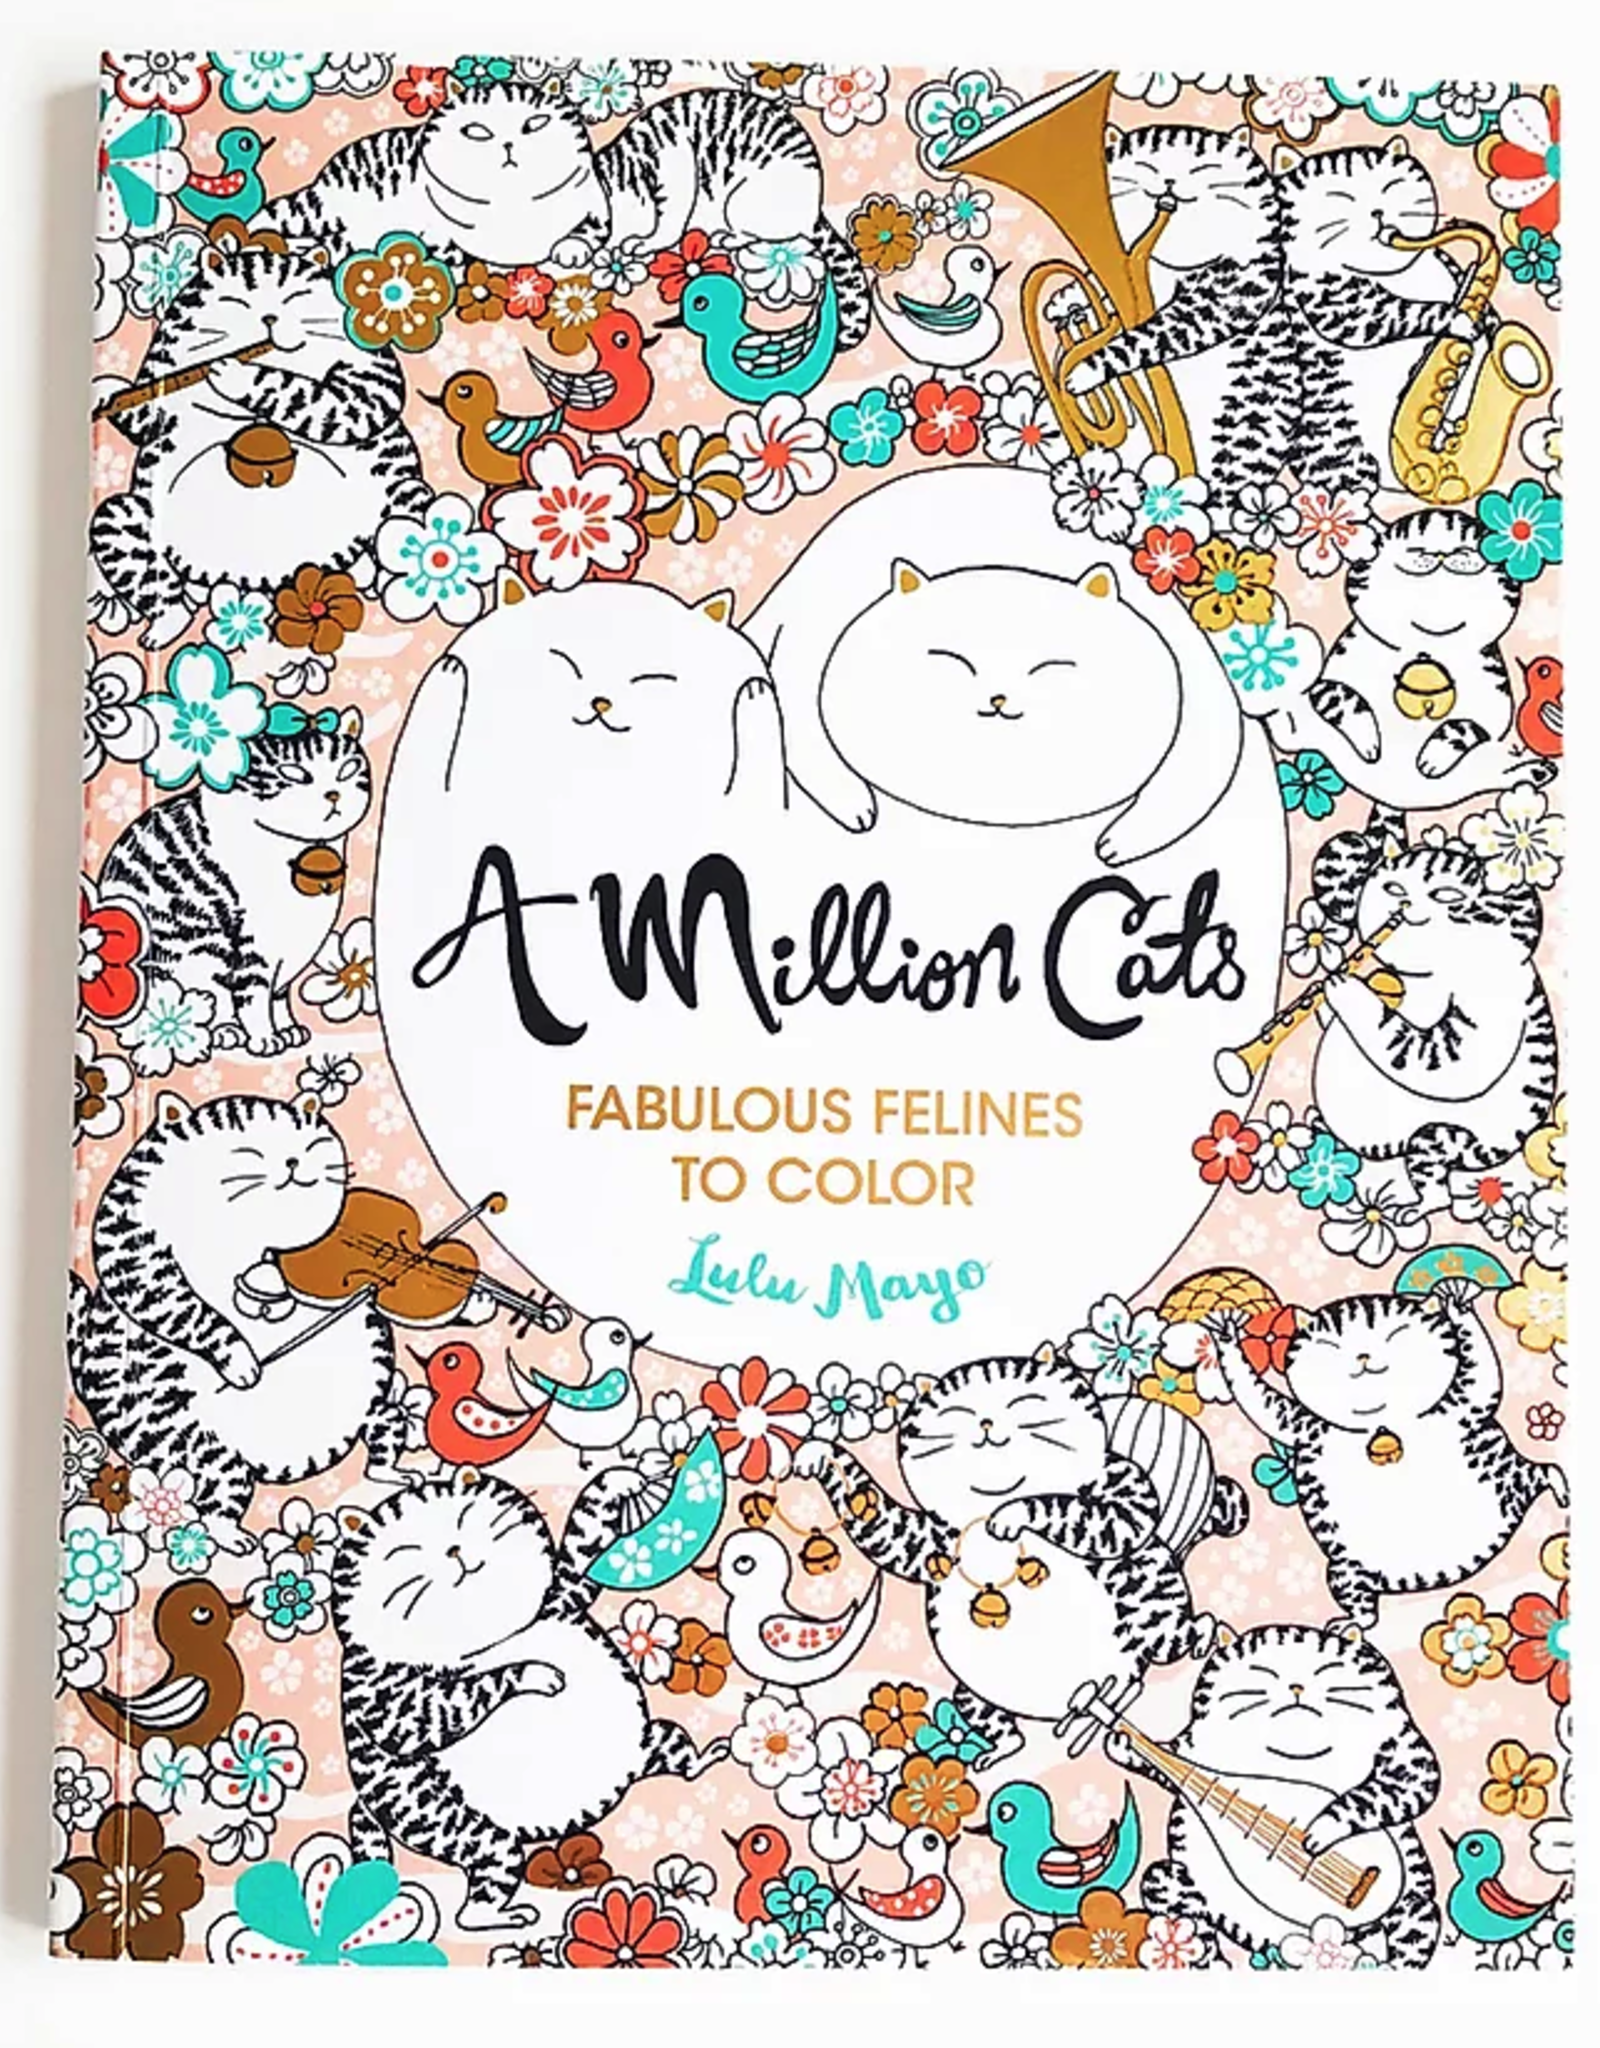 A Million Cats - Lulu Mayo